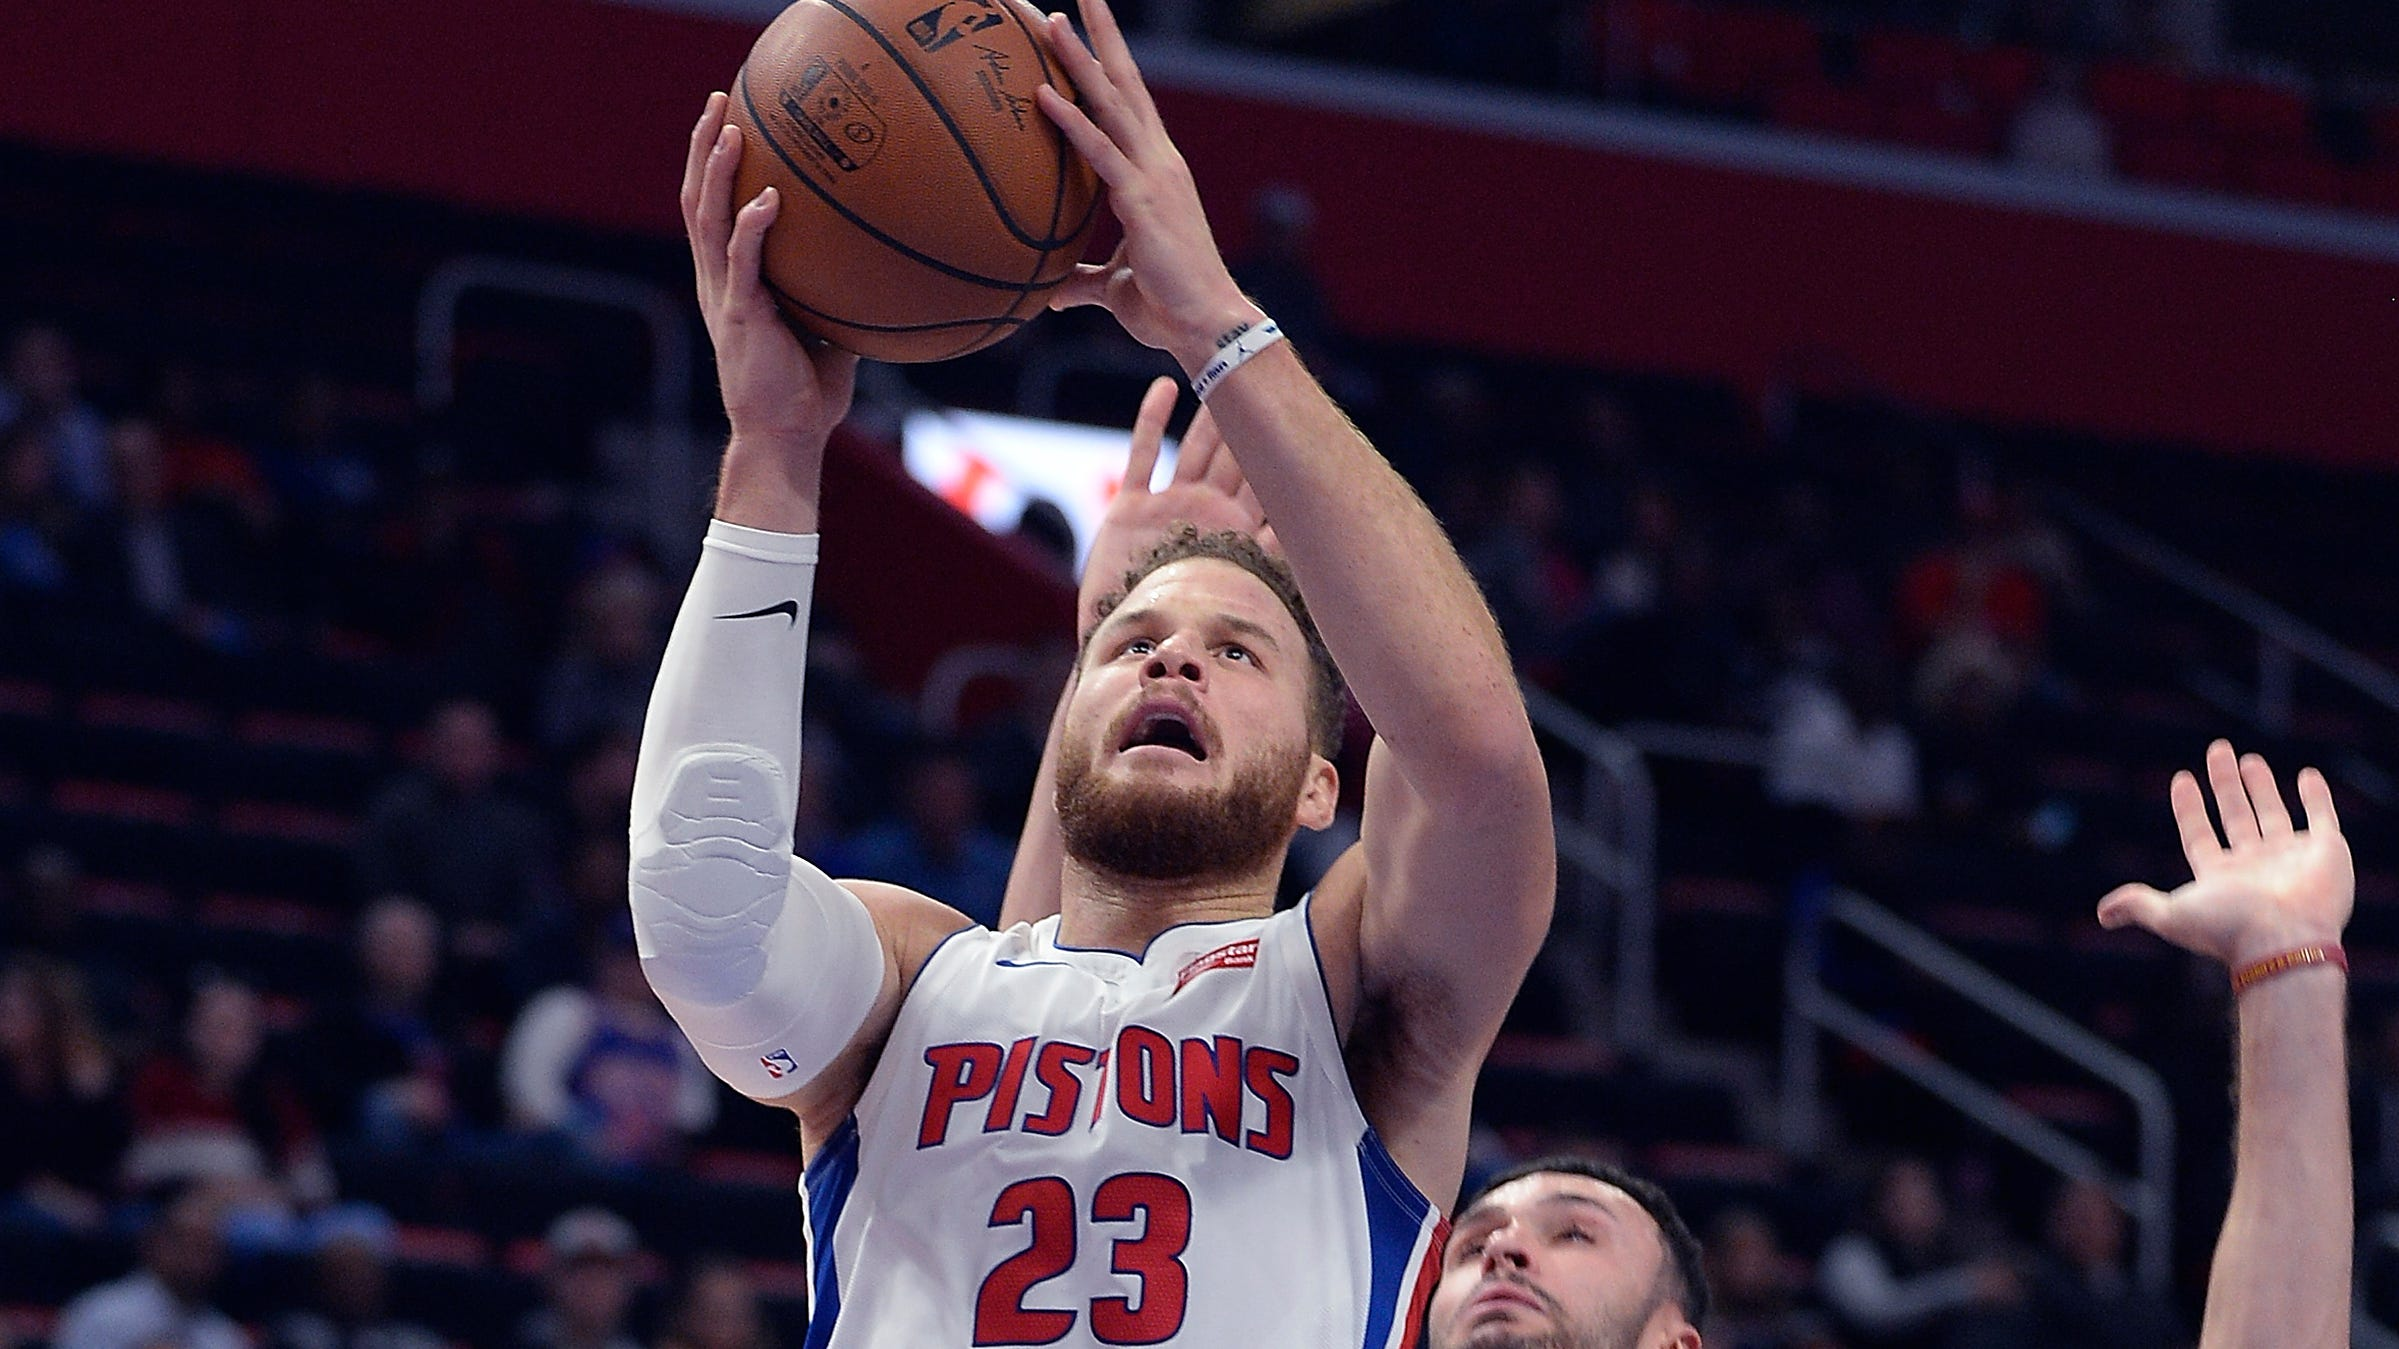 The Pistons' Blake Griffin scores over the Cavaliers' Larry Nance Jr. in the first quarter.